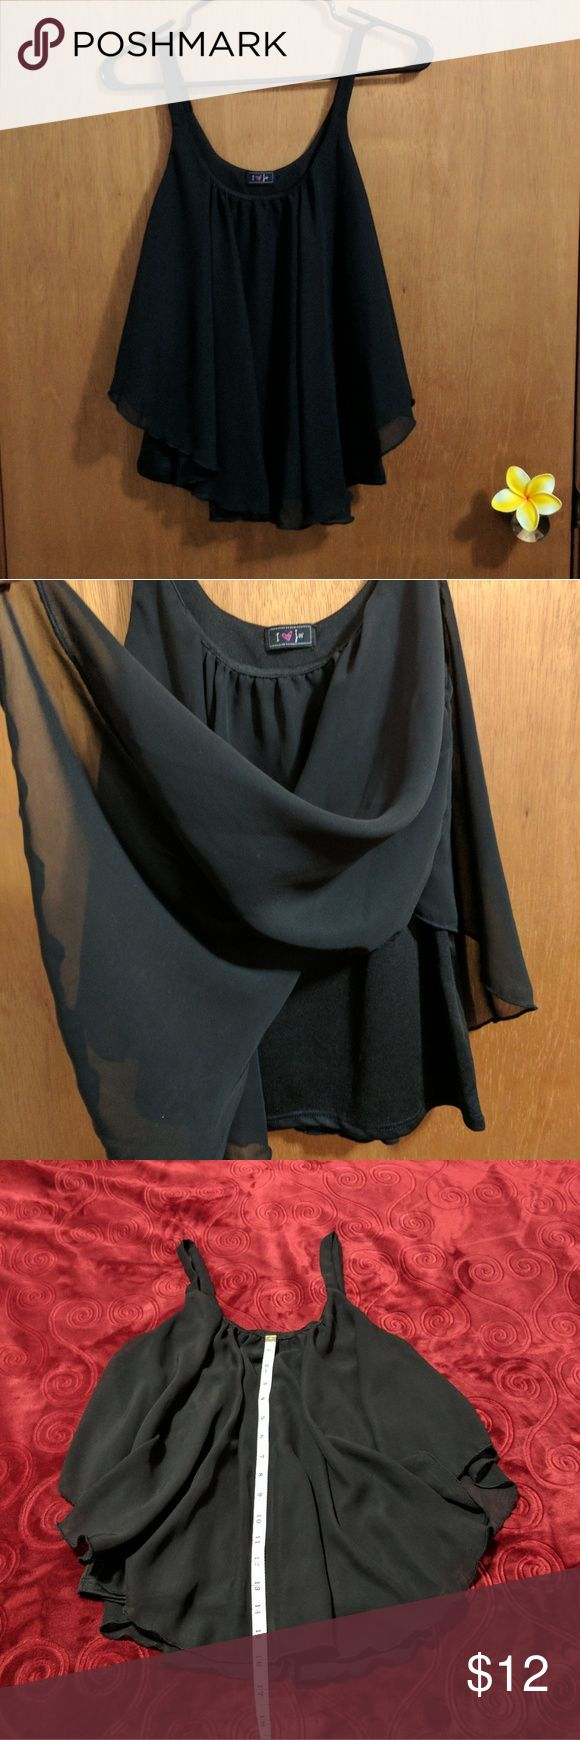 Top Nice & flowy dressy top with lining.  Measurements shown in pics #3, #4, #5 Jeans Warehouse Tops Tank Tops